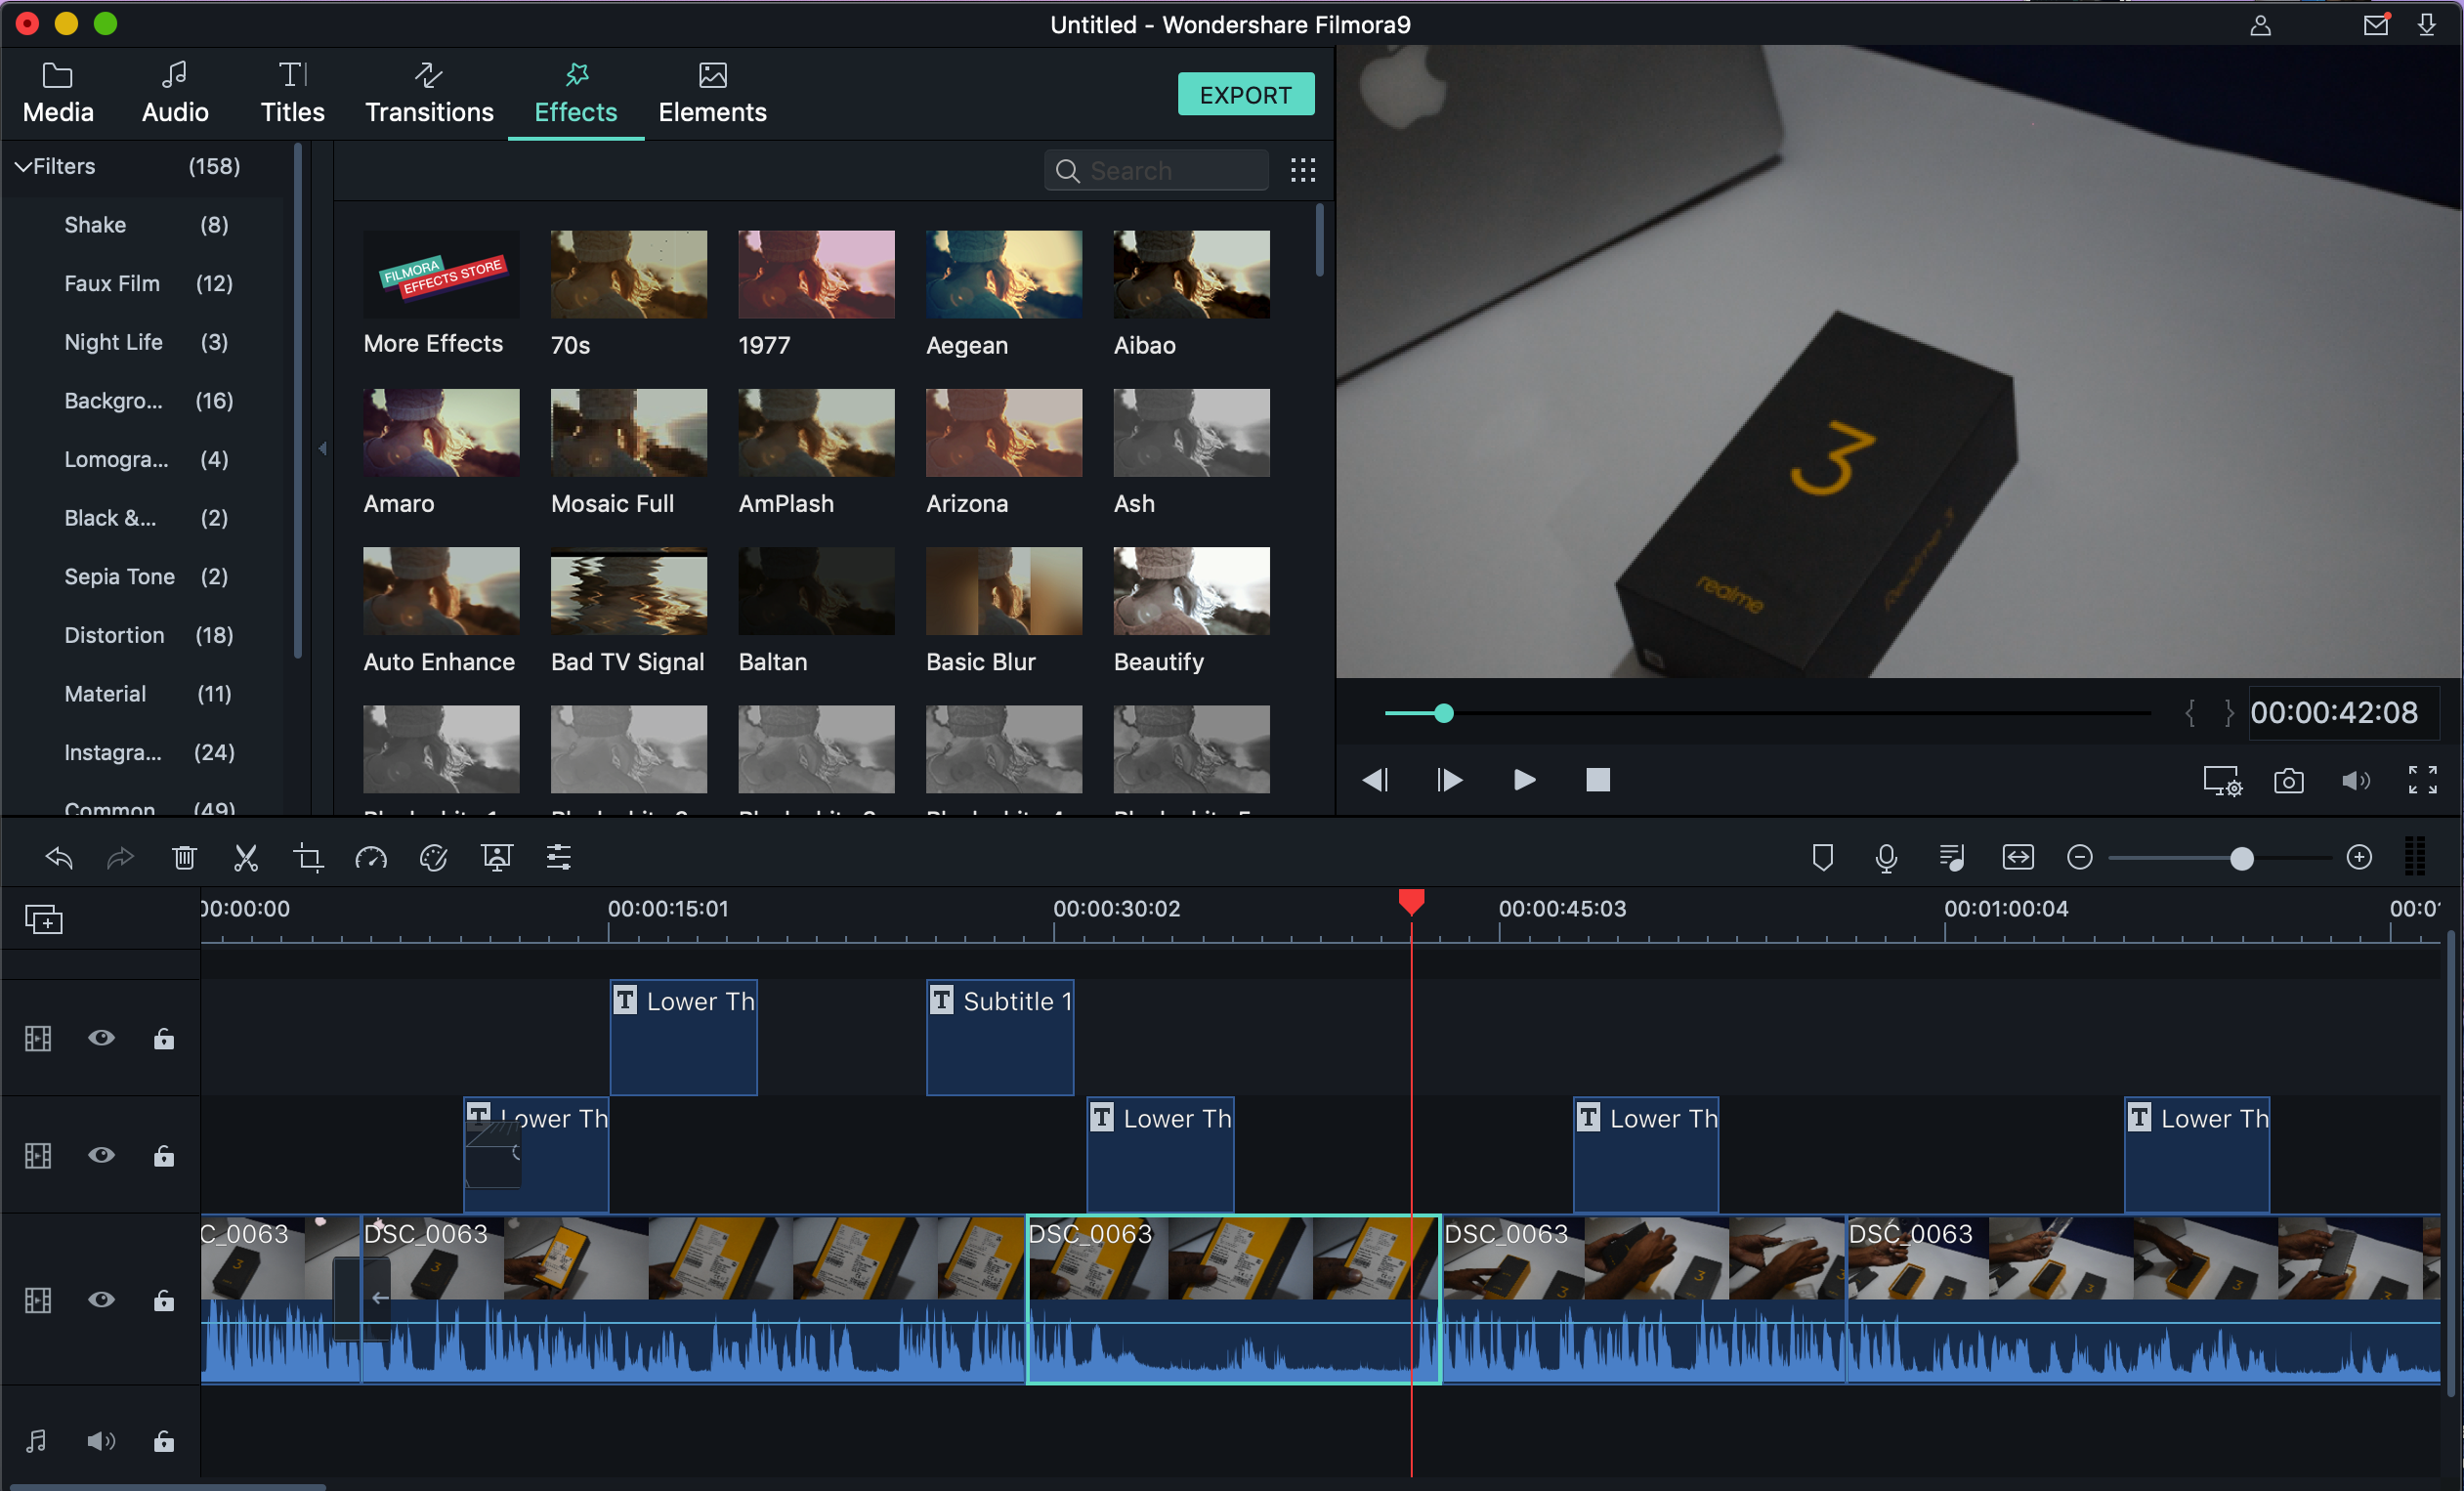 Wondershare Filmora 9 Review An Easy To Use Video Editor For All Video Editor Video Editing Software Video